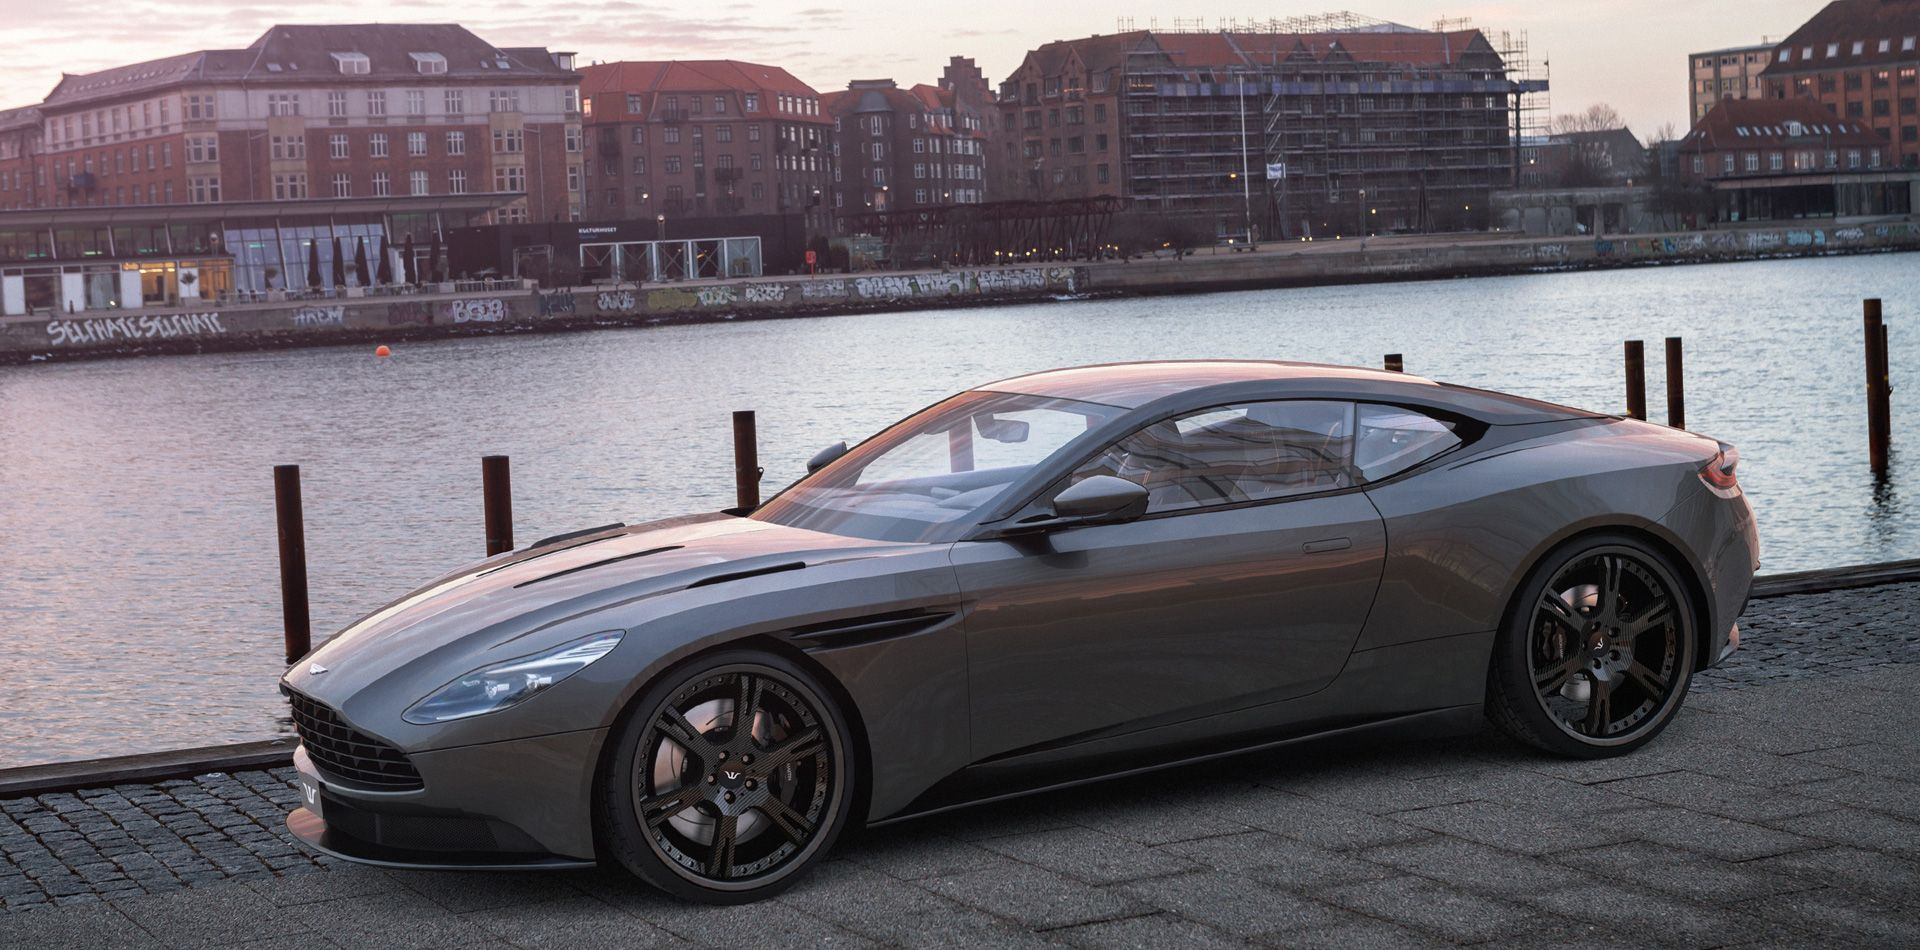 Aston Martin Db11 With Customized 6sporz Wheels Centers With Carbonlook And Outside Rims Matching Car S Color Aston Martin Db11 Aston Martin Aston